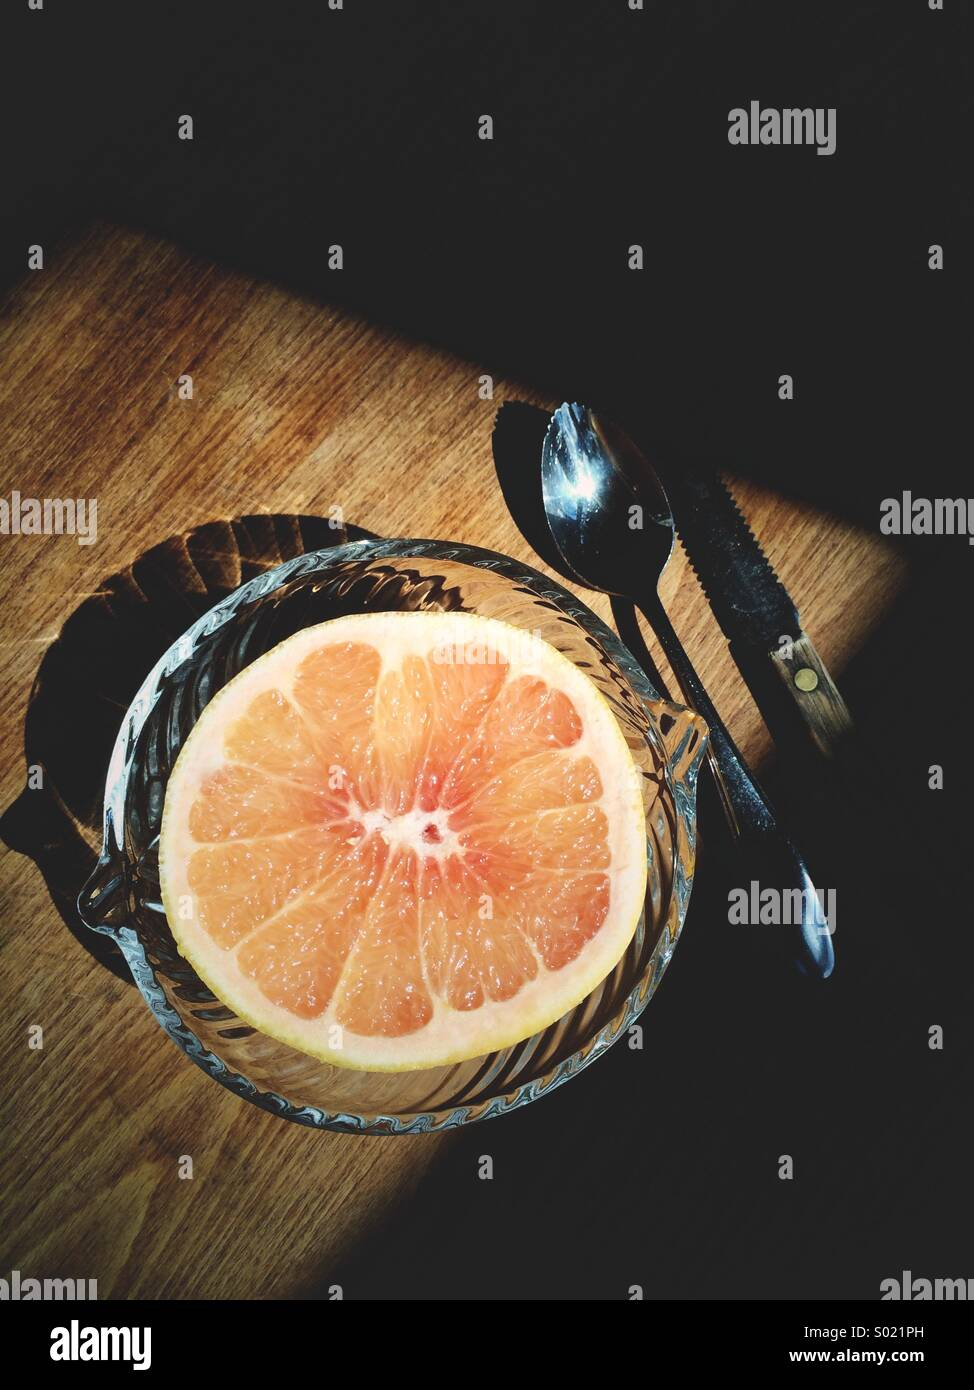 Pink grapefruit with grapefruit spoon and knife on a table. - Stock Image